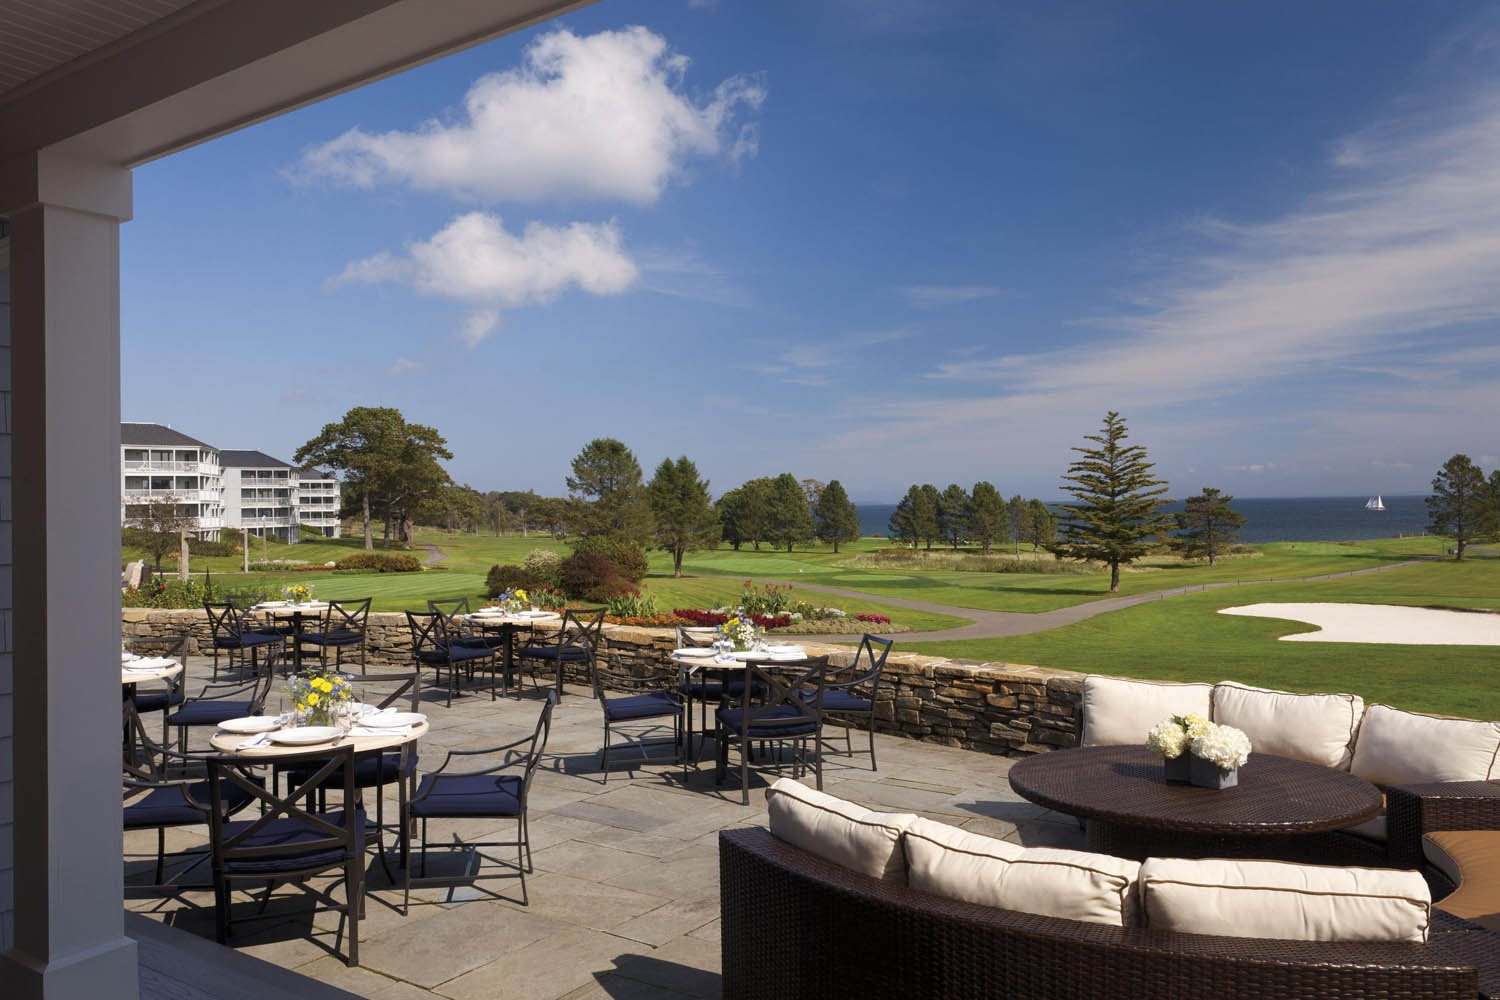 Outdoor dining area with tables and chairs at Samoset Resort, Maine